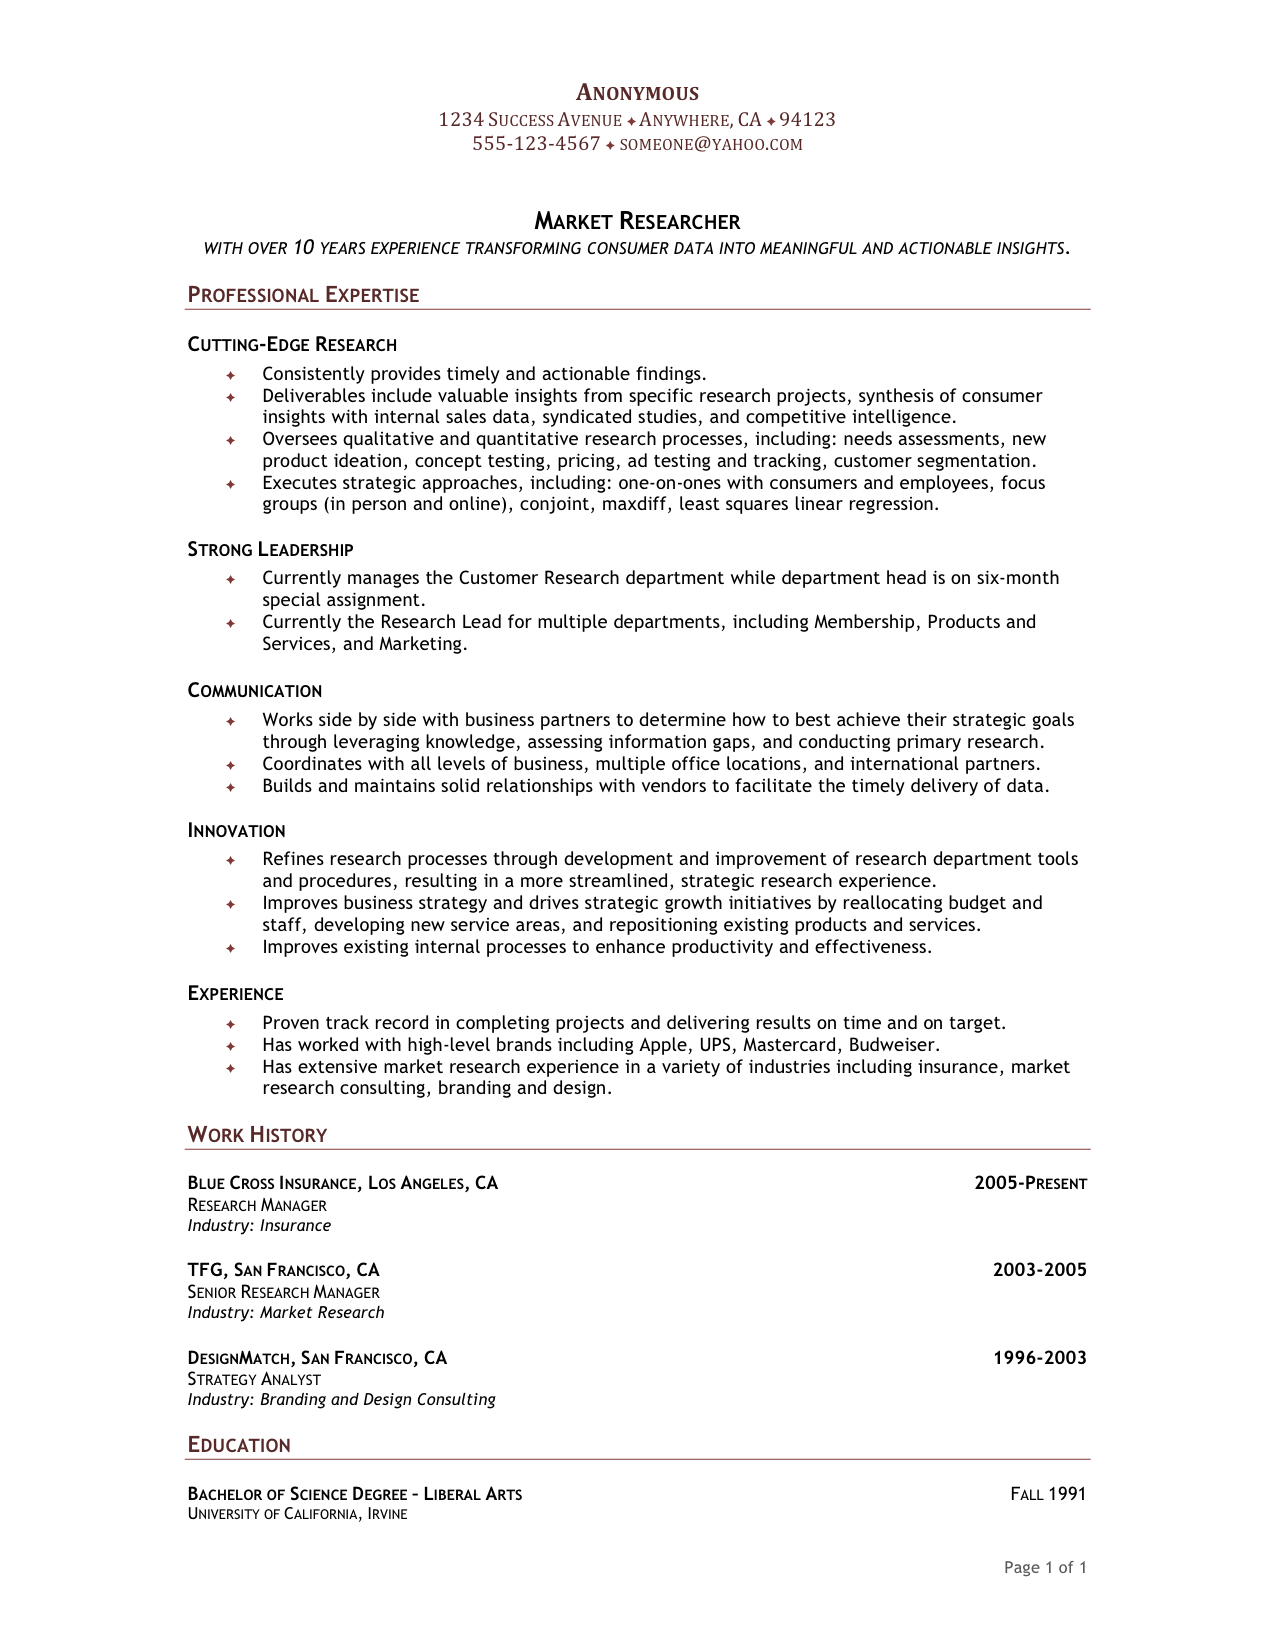 chronological cv meaning professional resume cover letter sample chronological cv meaning chronological dictionary definition chronological defined chronological resume definition chronological resume definition